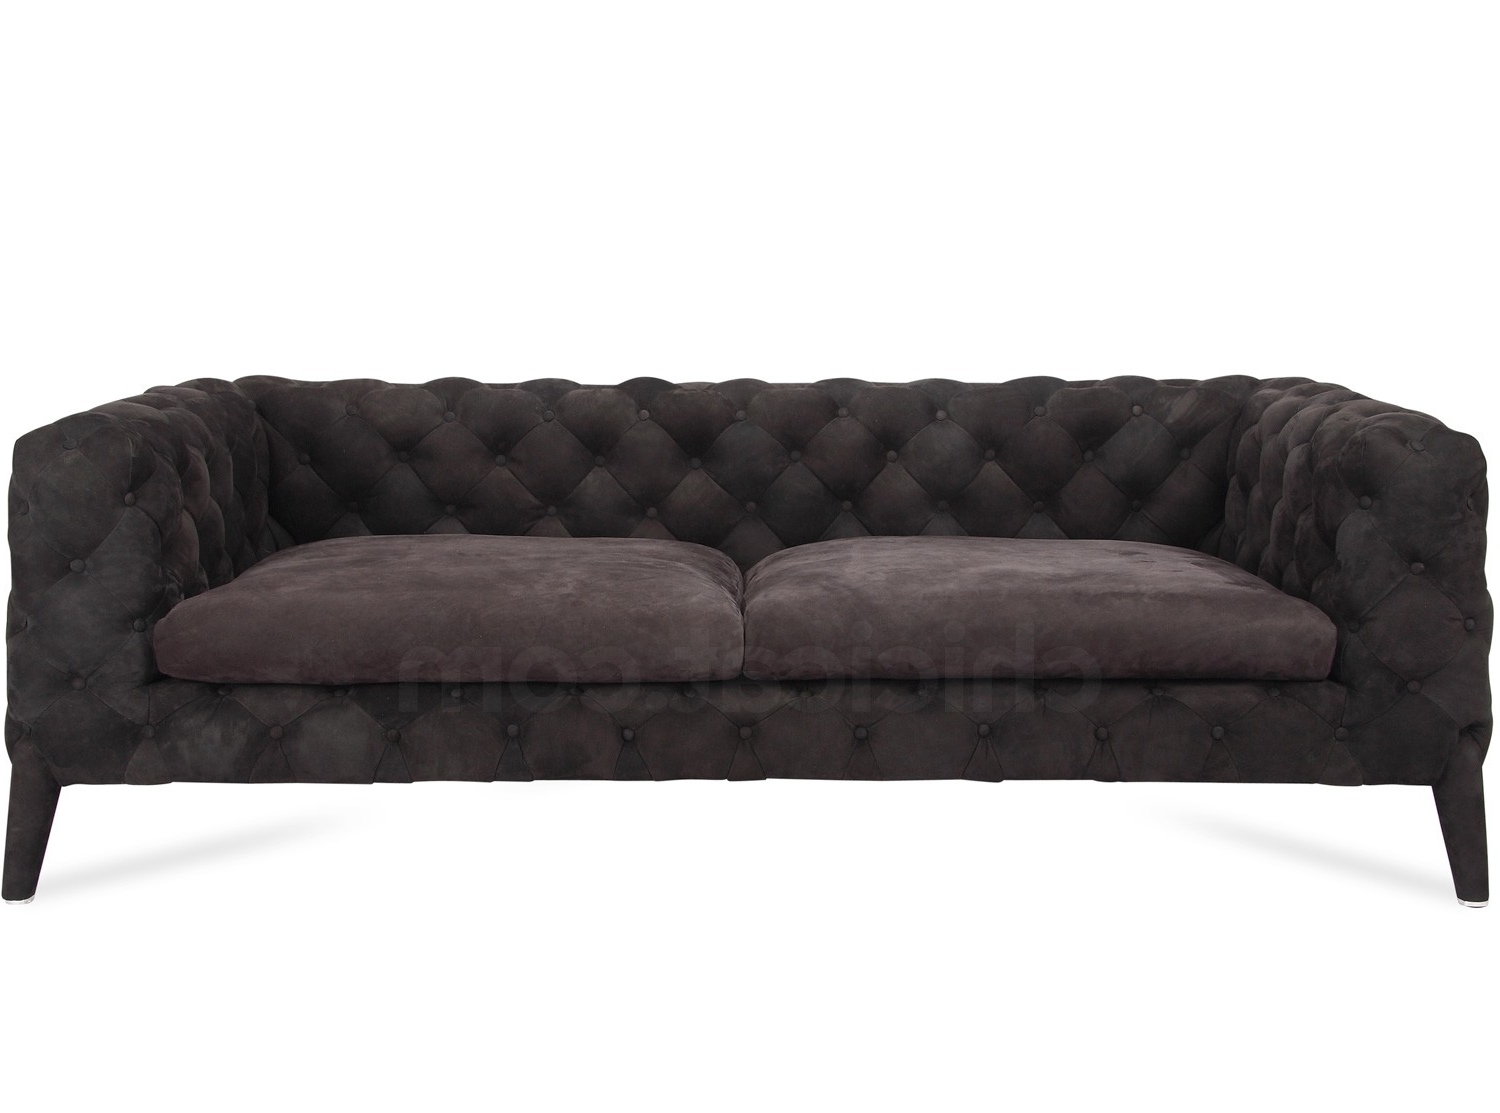 Windsor Sofas Inside Widely Used Windsor Chesterfield Sofa 3 Seater (Replica) (View 17 of 20)